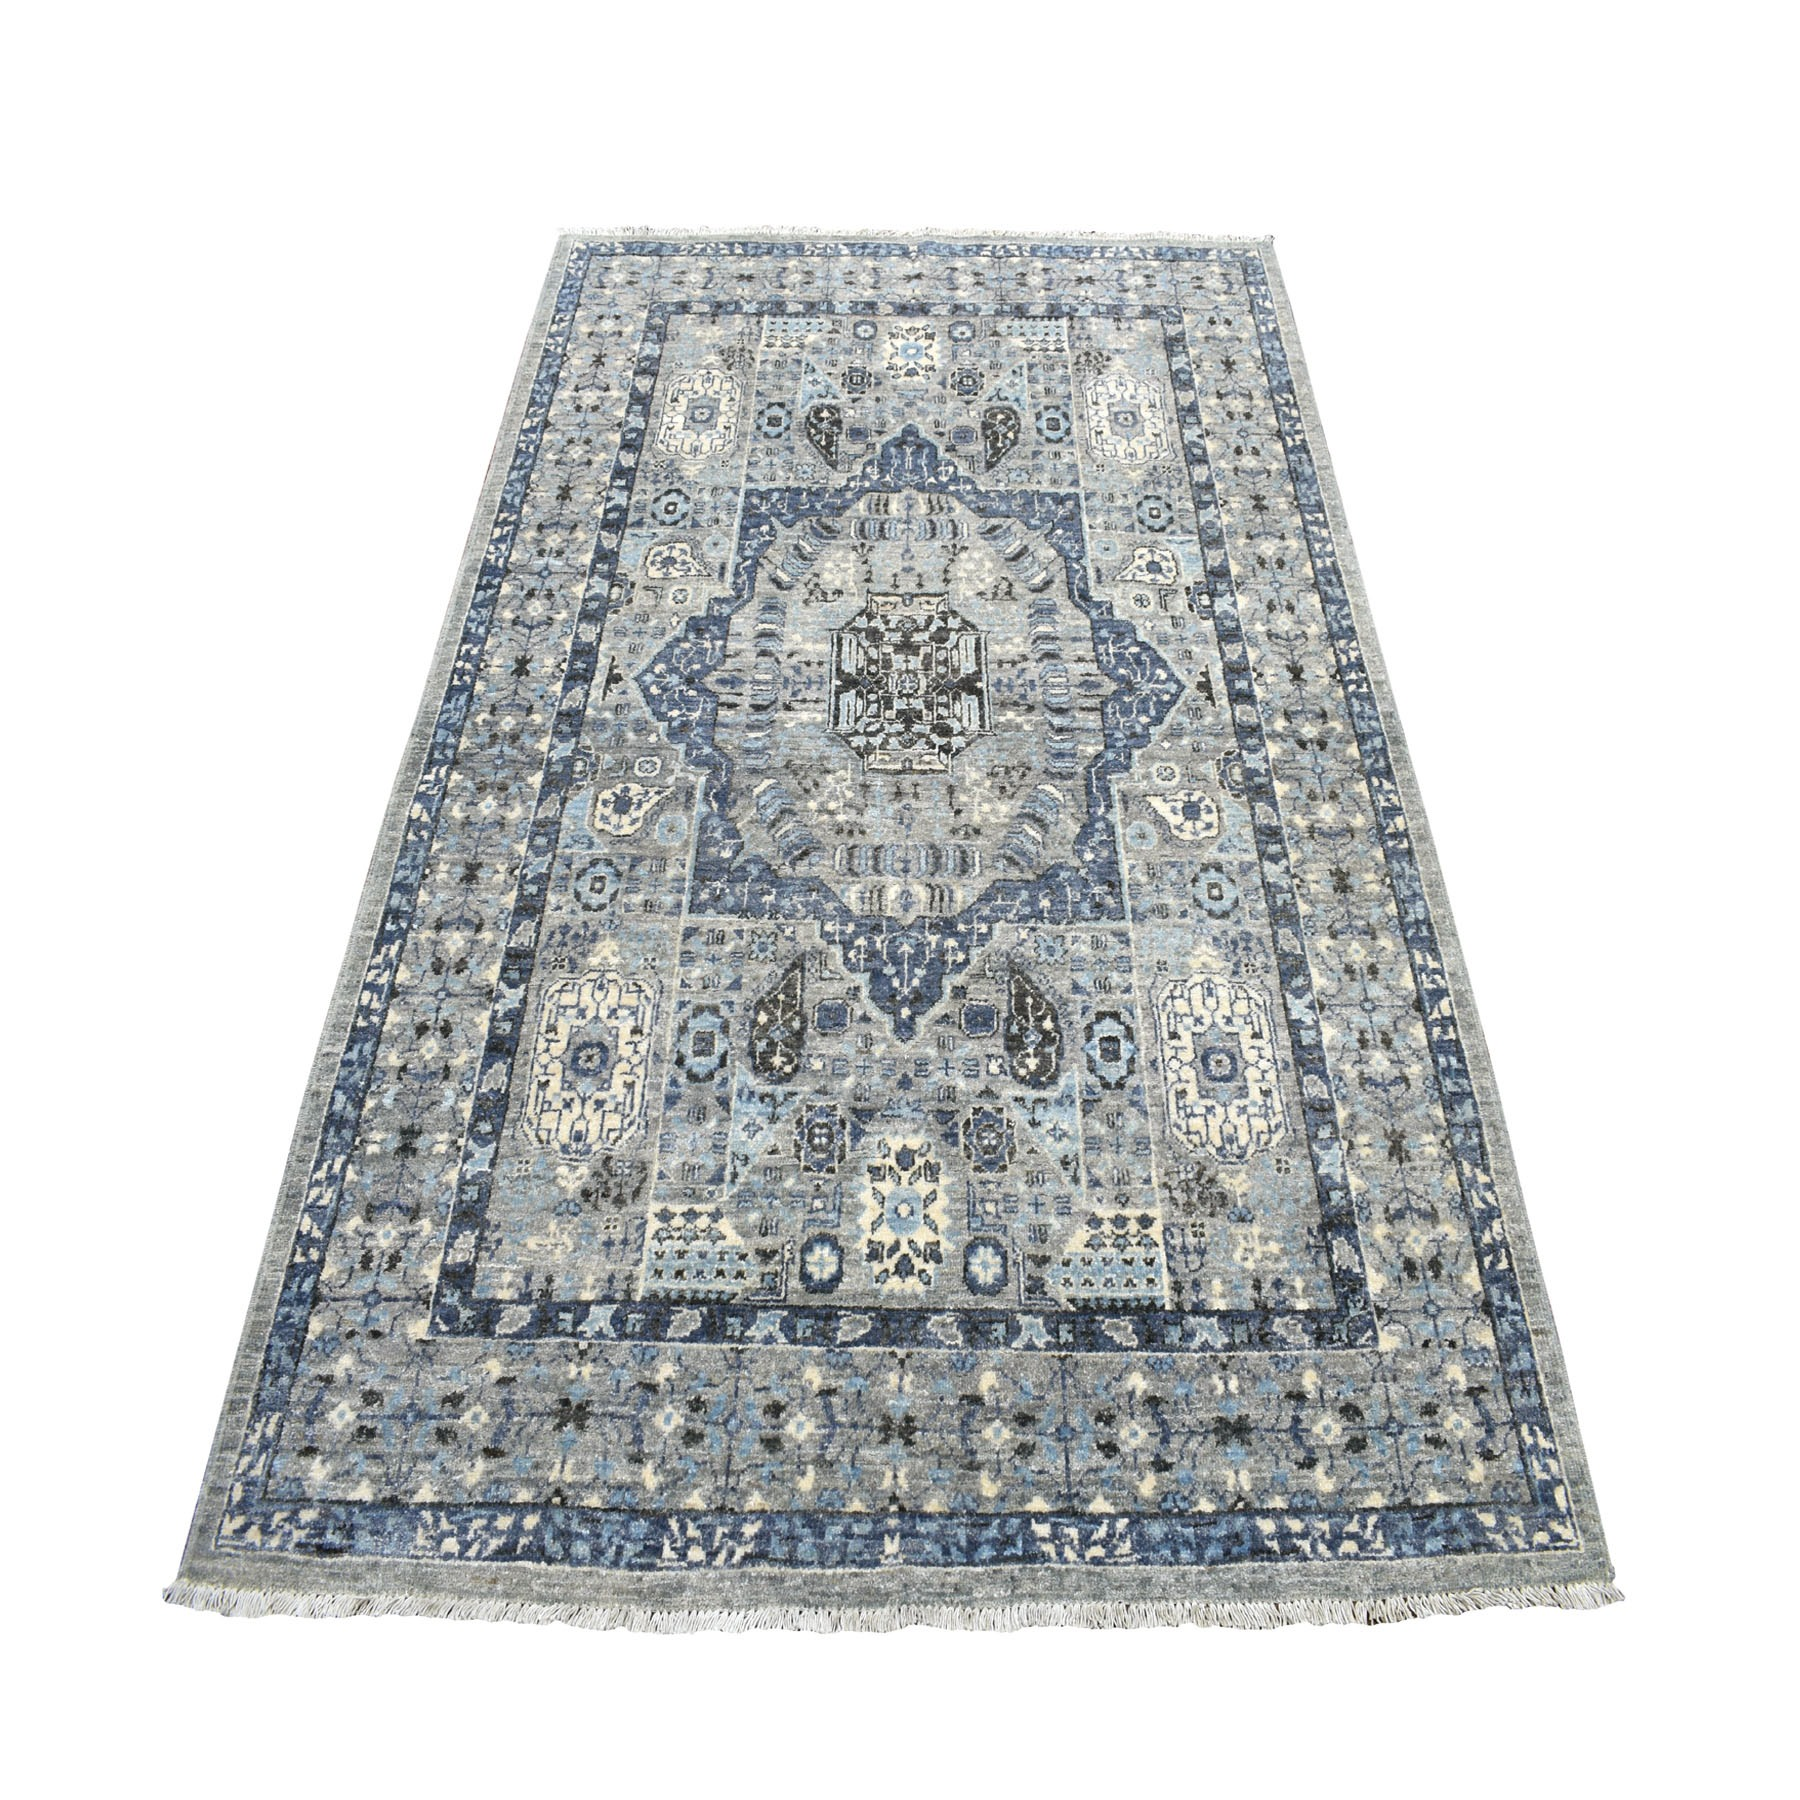 5'X7' Gray Peshawar With Mamluk Design Pure Wool Hand Knotted Oriental Rug moaebdb6